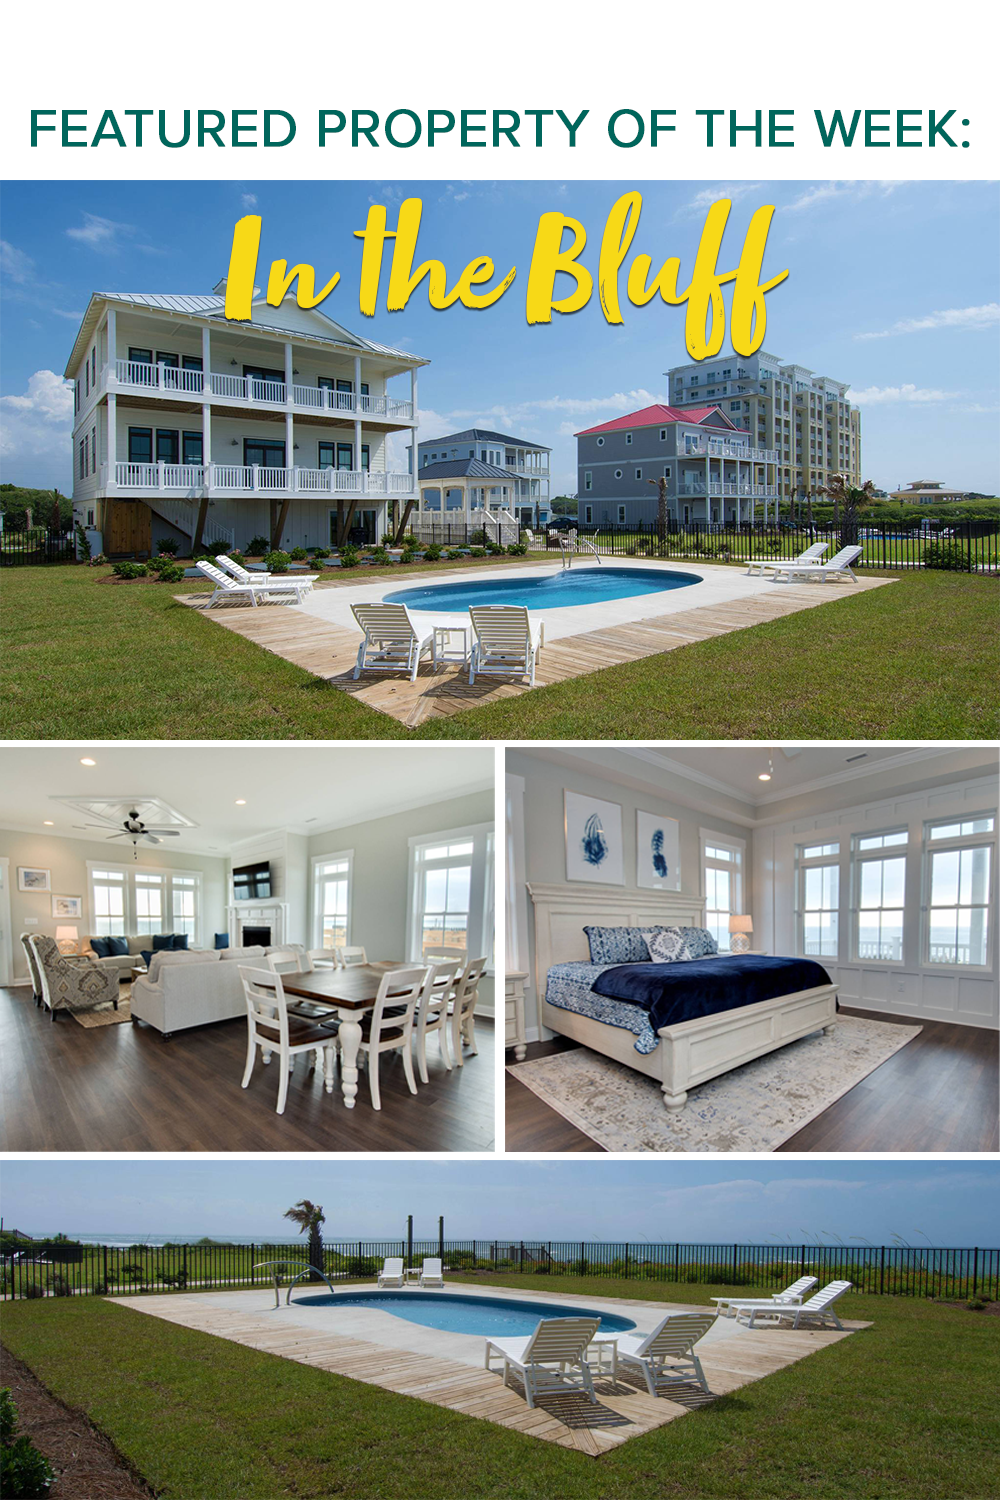 In the Bluff - Featured Property of The Week